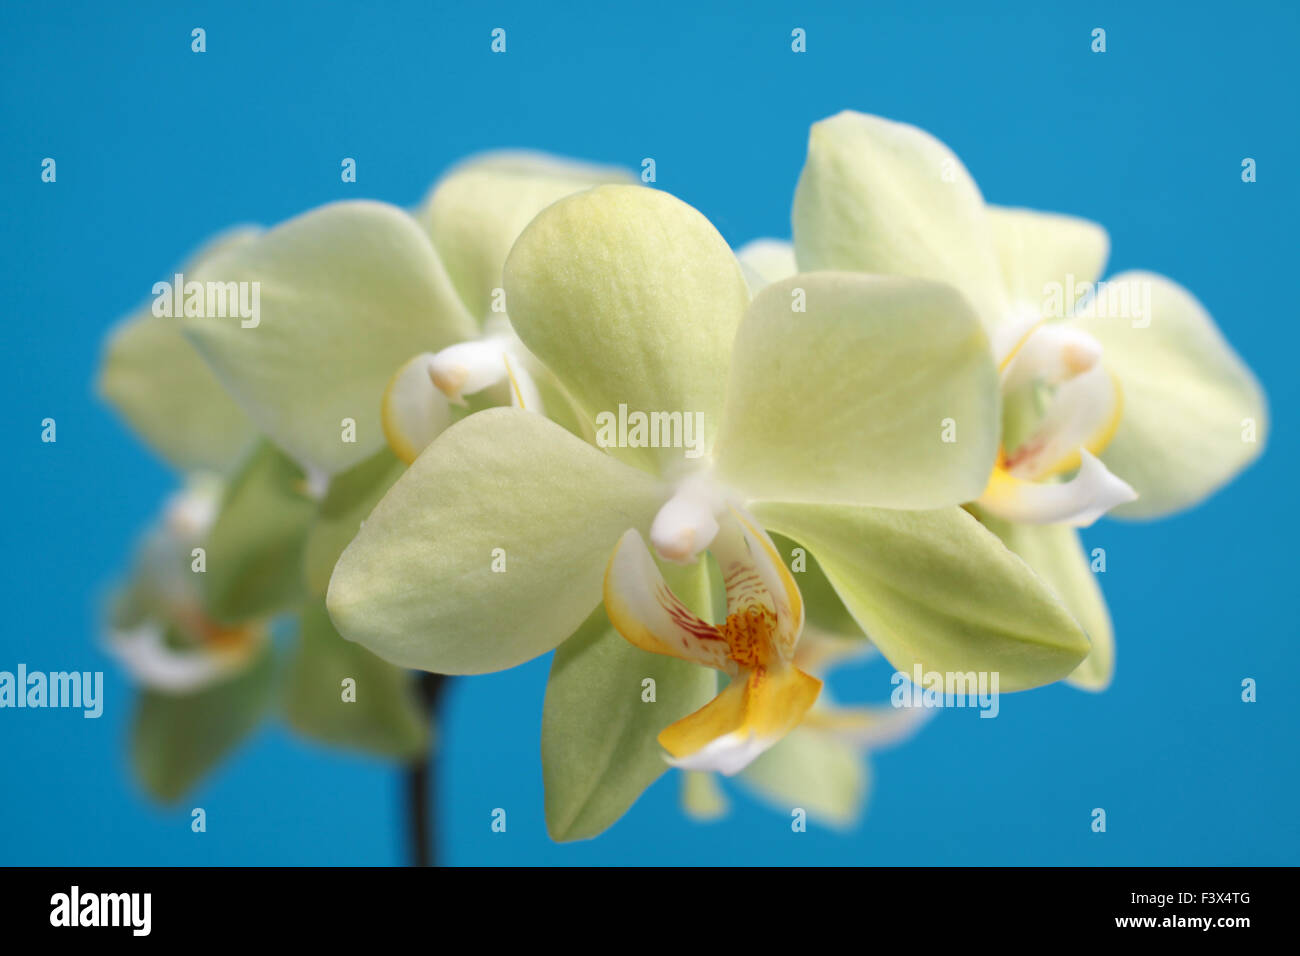 Orchidee Blume Bluete Blume Orchidee Stock Photos Bluete Blume Orchidee Stock